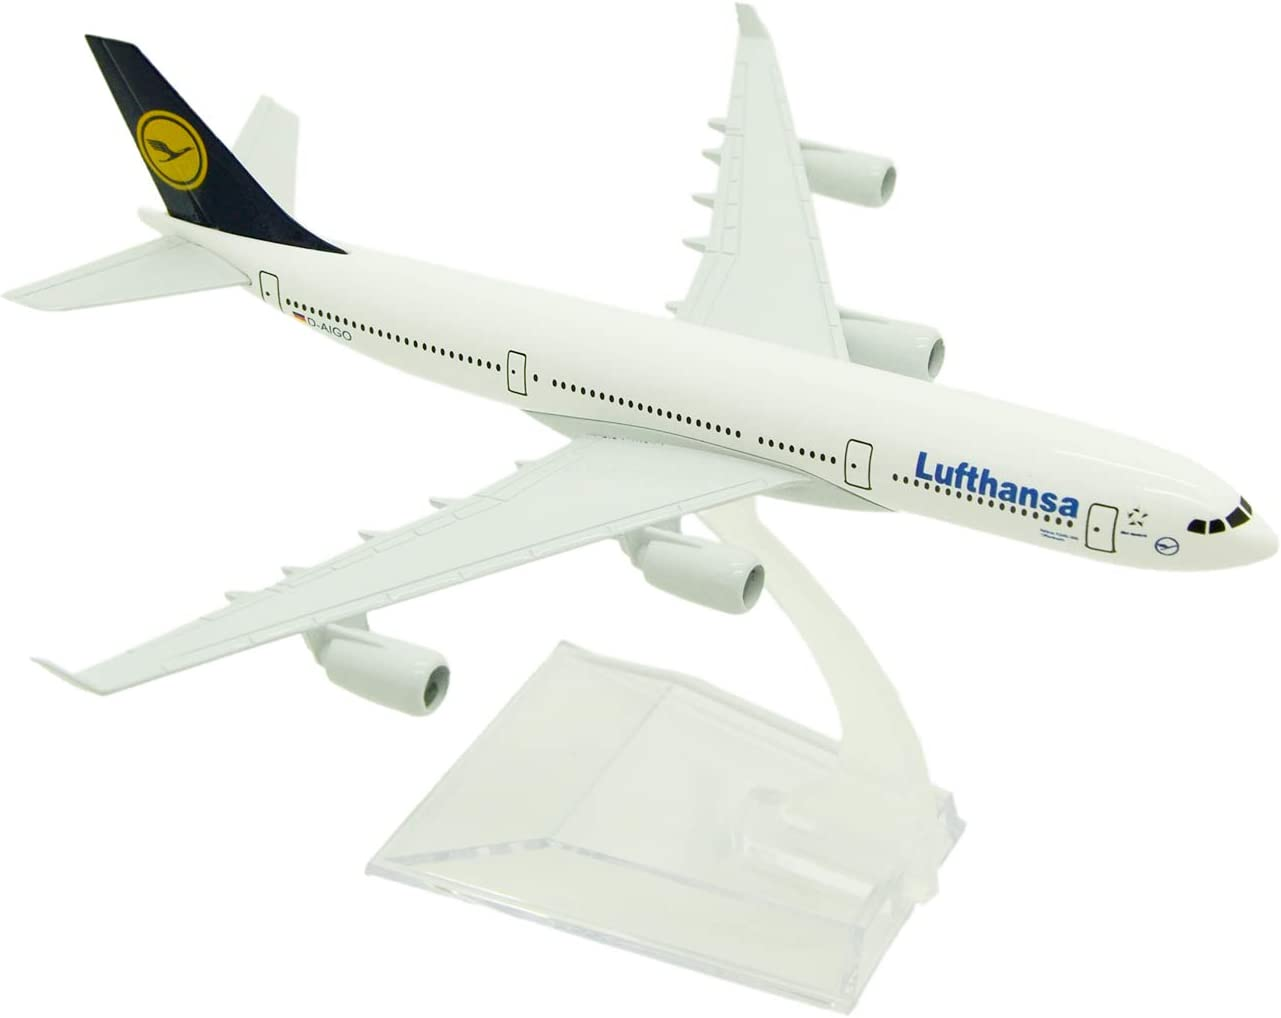 16cm Alloy Metal Germany Air Lufthansa A340 Airlines Airplane Model Lufthansa Airbus 340 Airways Plane Model Aircraft Kids Gifts (A340)